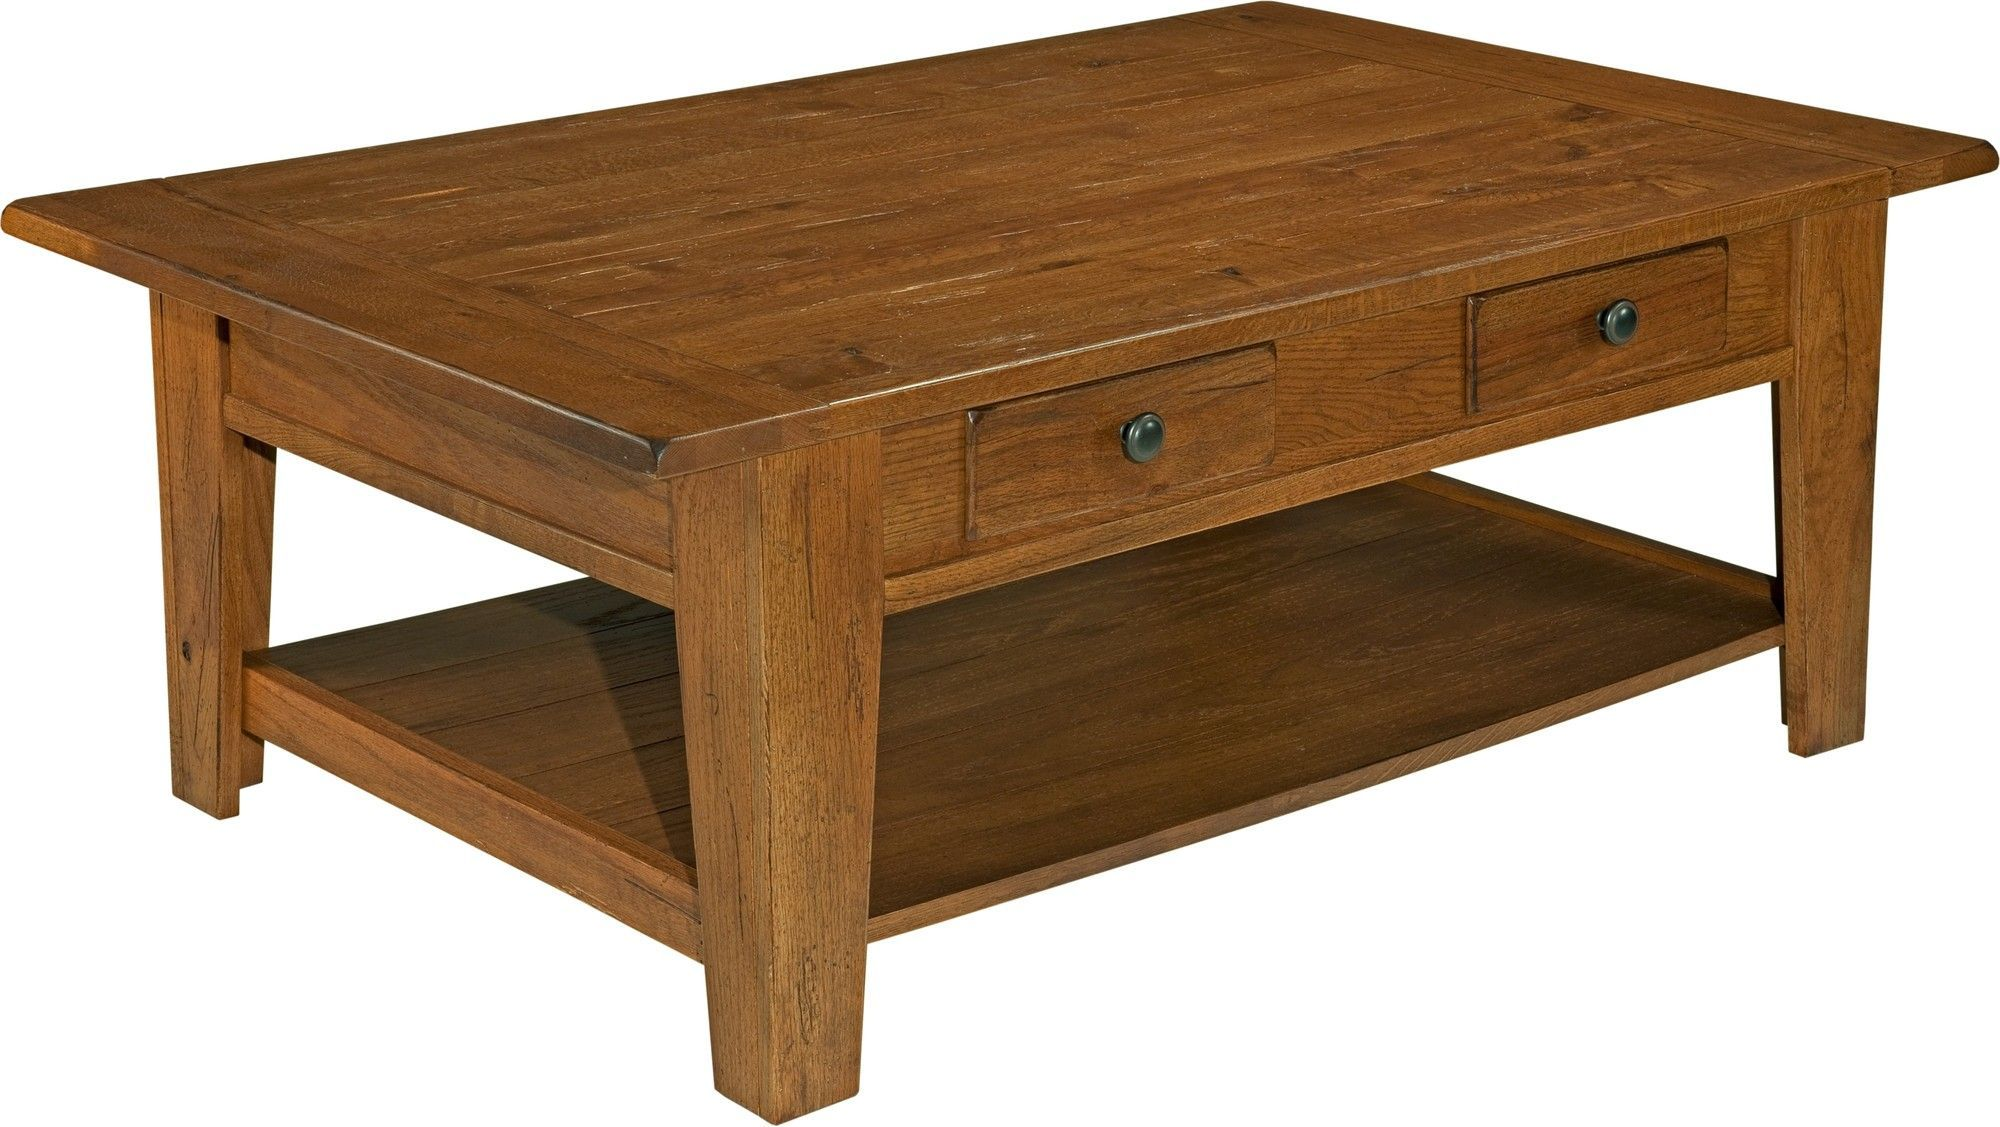 Broyhill Attic Heirlooms Coffee Table Leather Coffee Table Coffee Table Coffee And End Tables